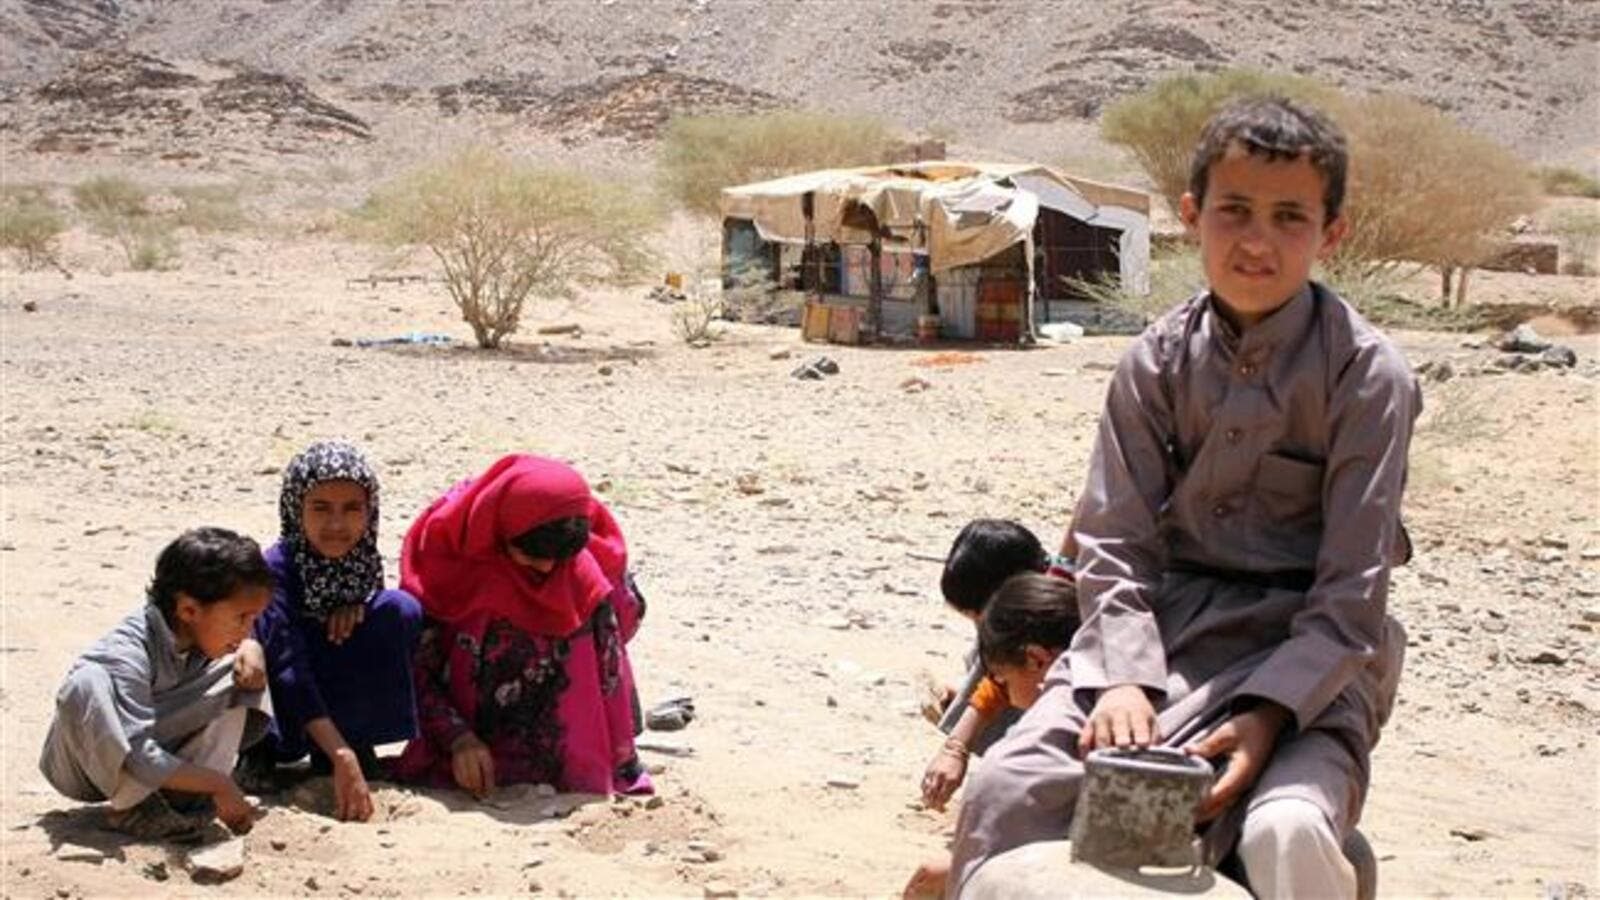 Displaced Yemeni Children Playing Outside Their Shelter (AFP/File Photo)